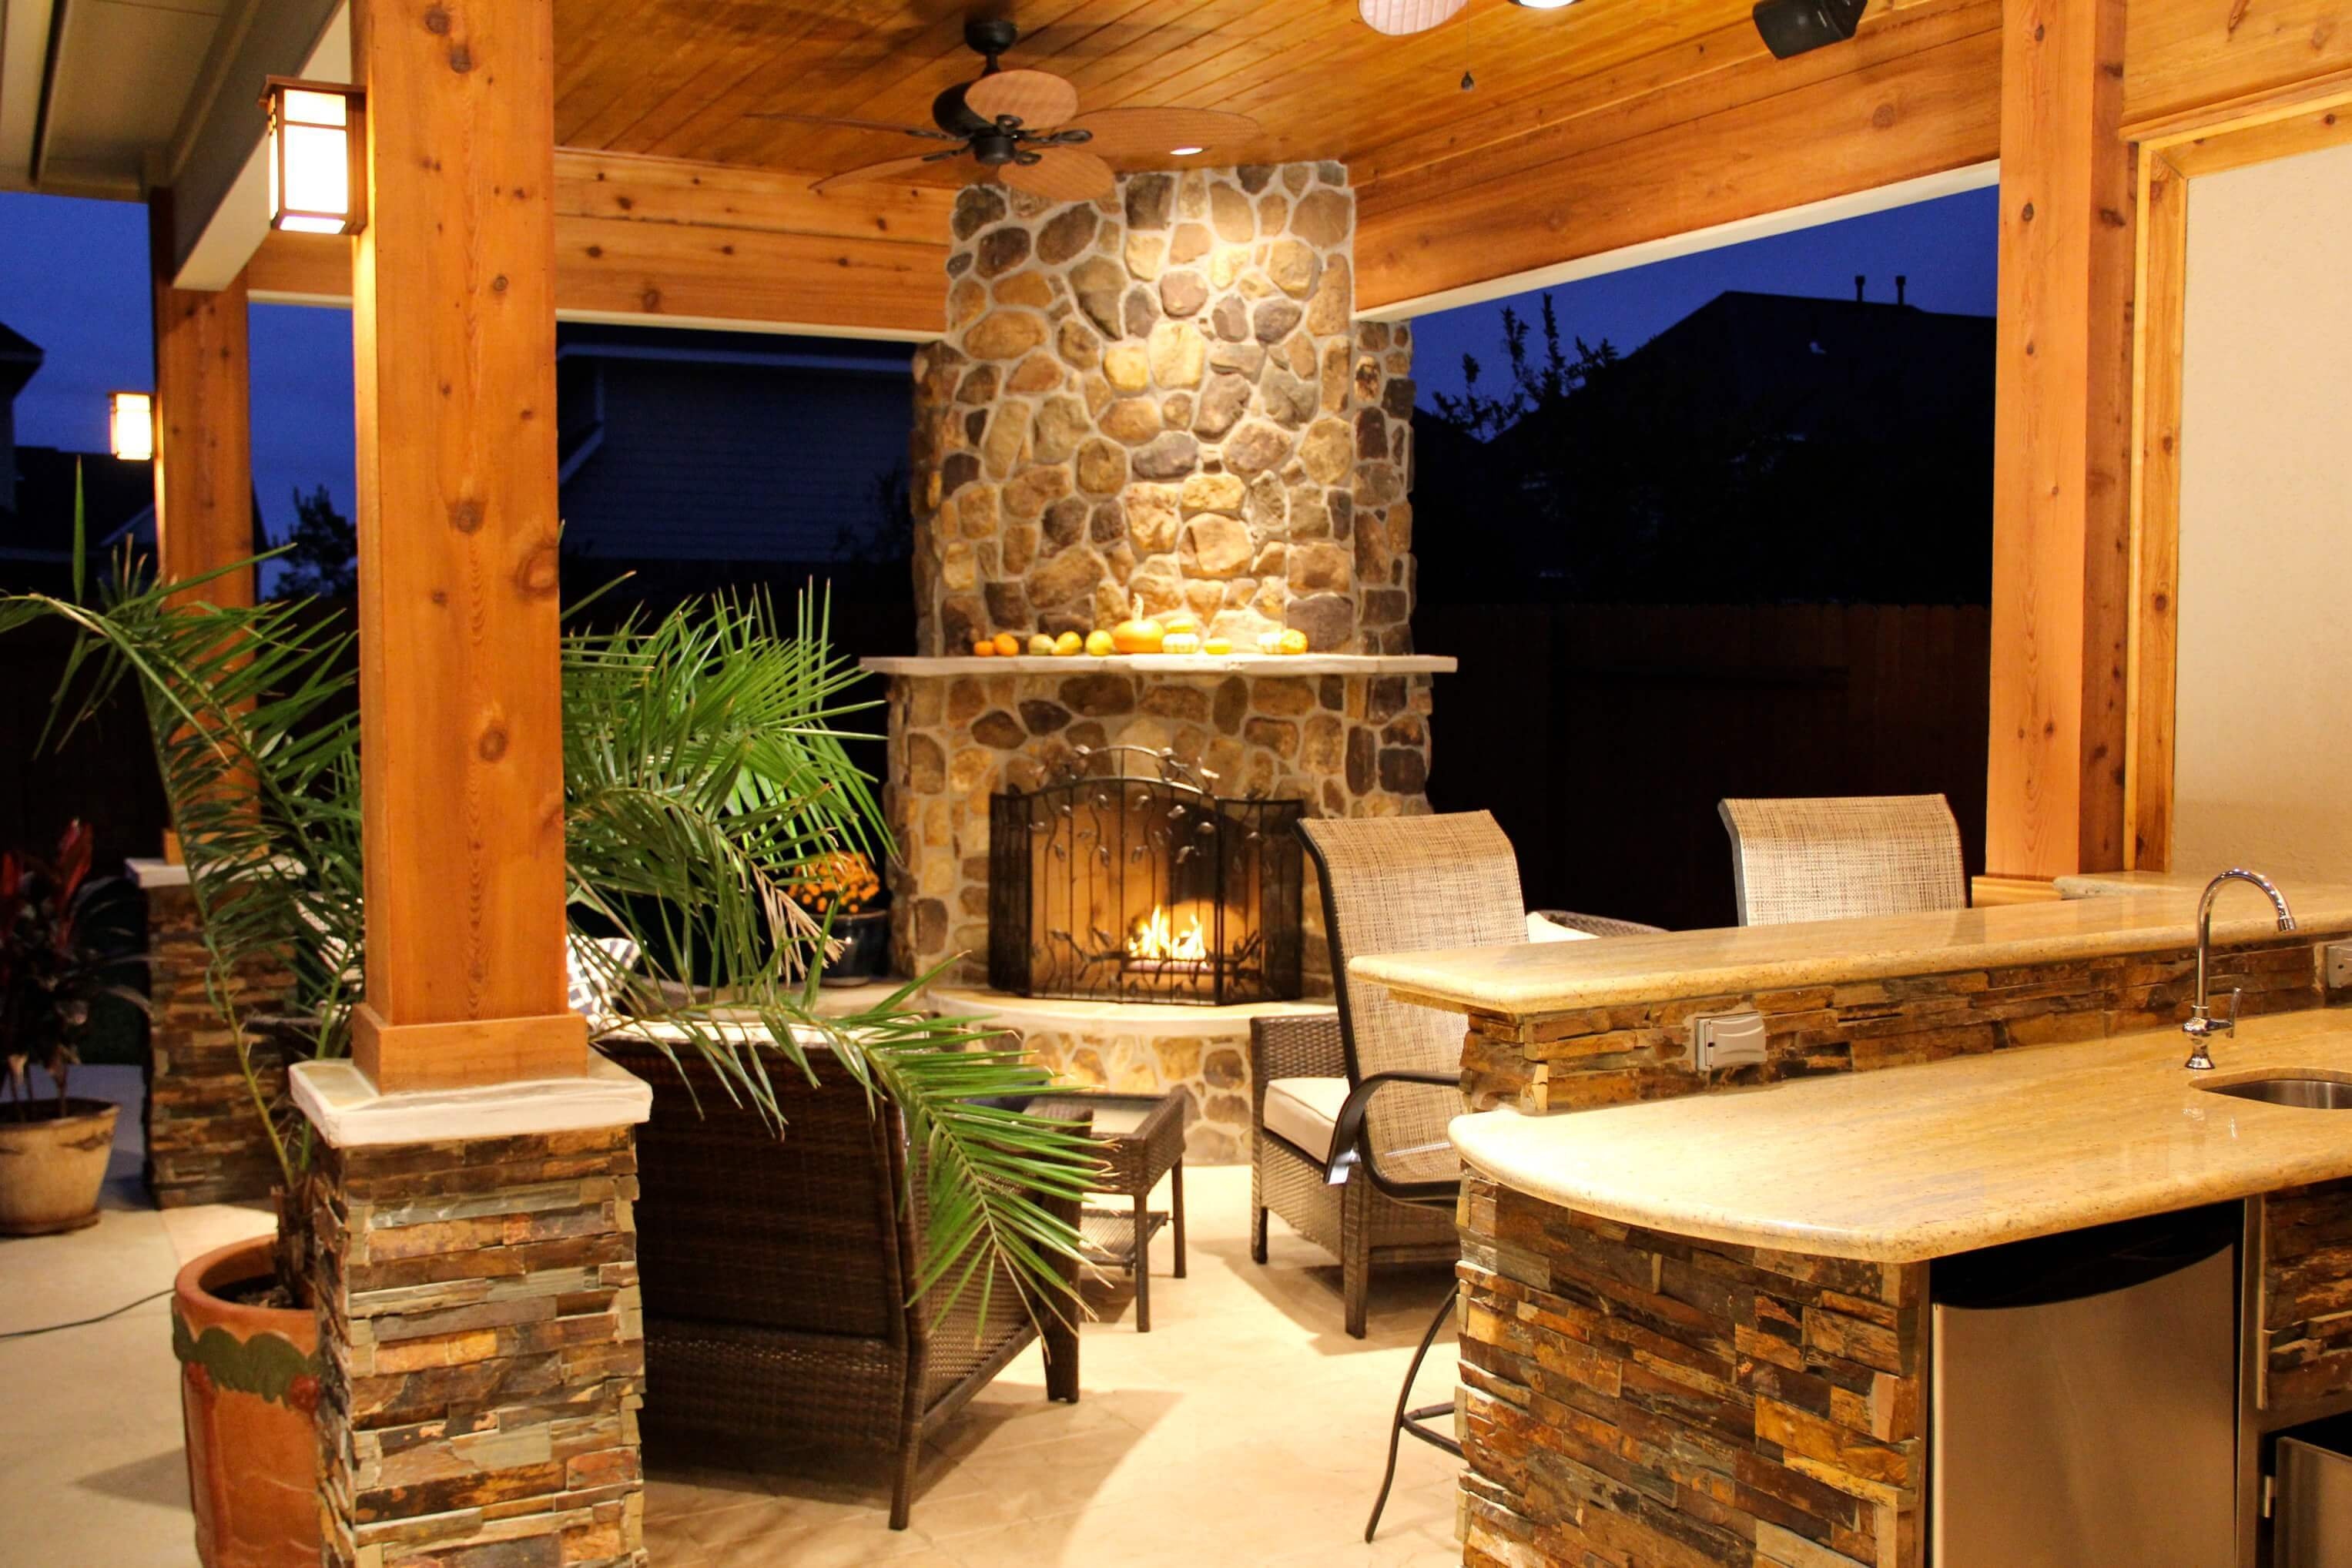 Patio Cover With Fireplace & Kitchen In Firethorne - Texas ... on Outdoor Kitchen And Fireplace Ideas id=17440